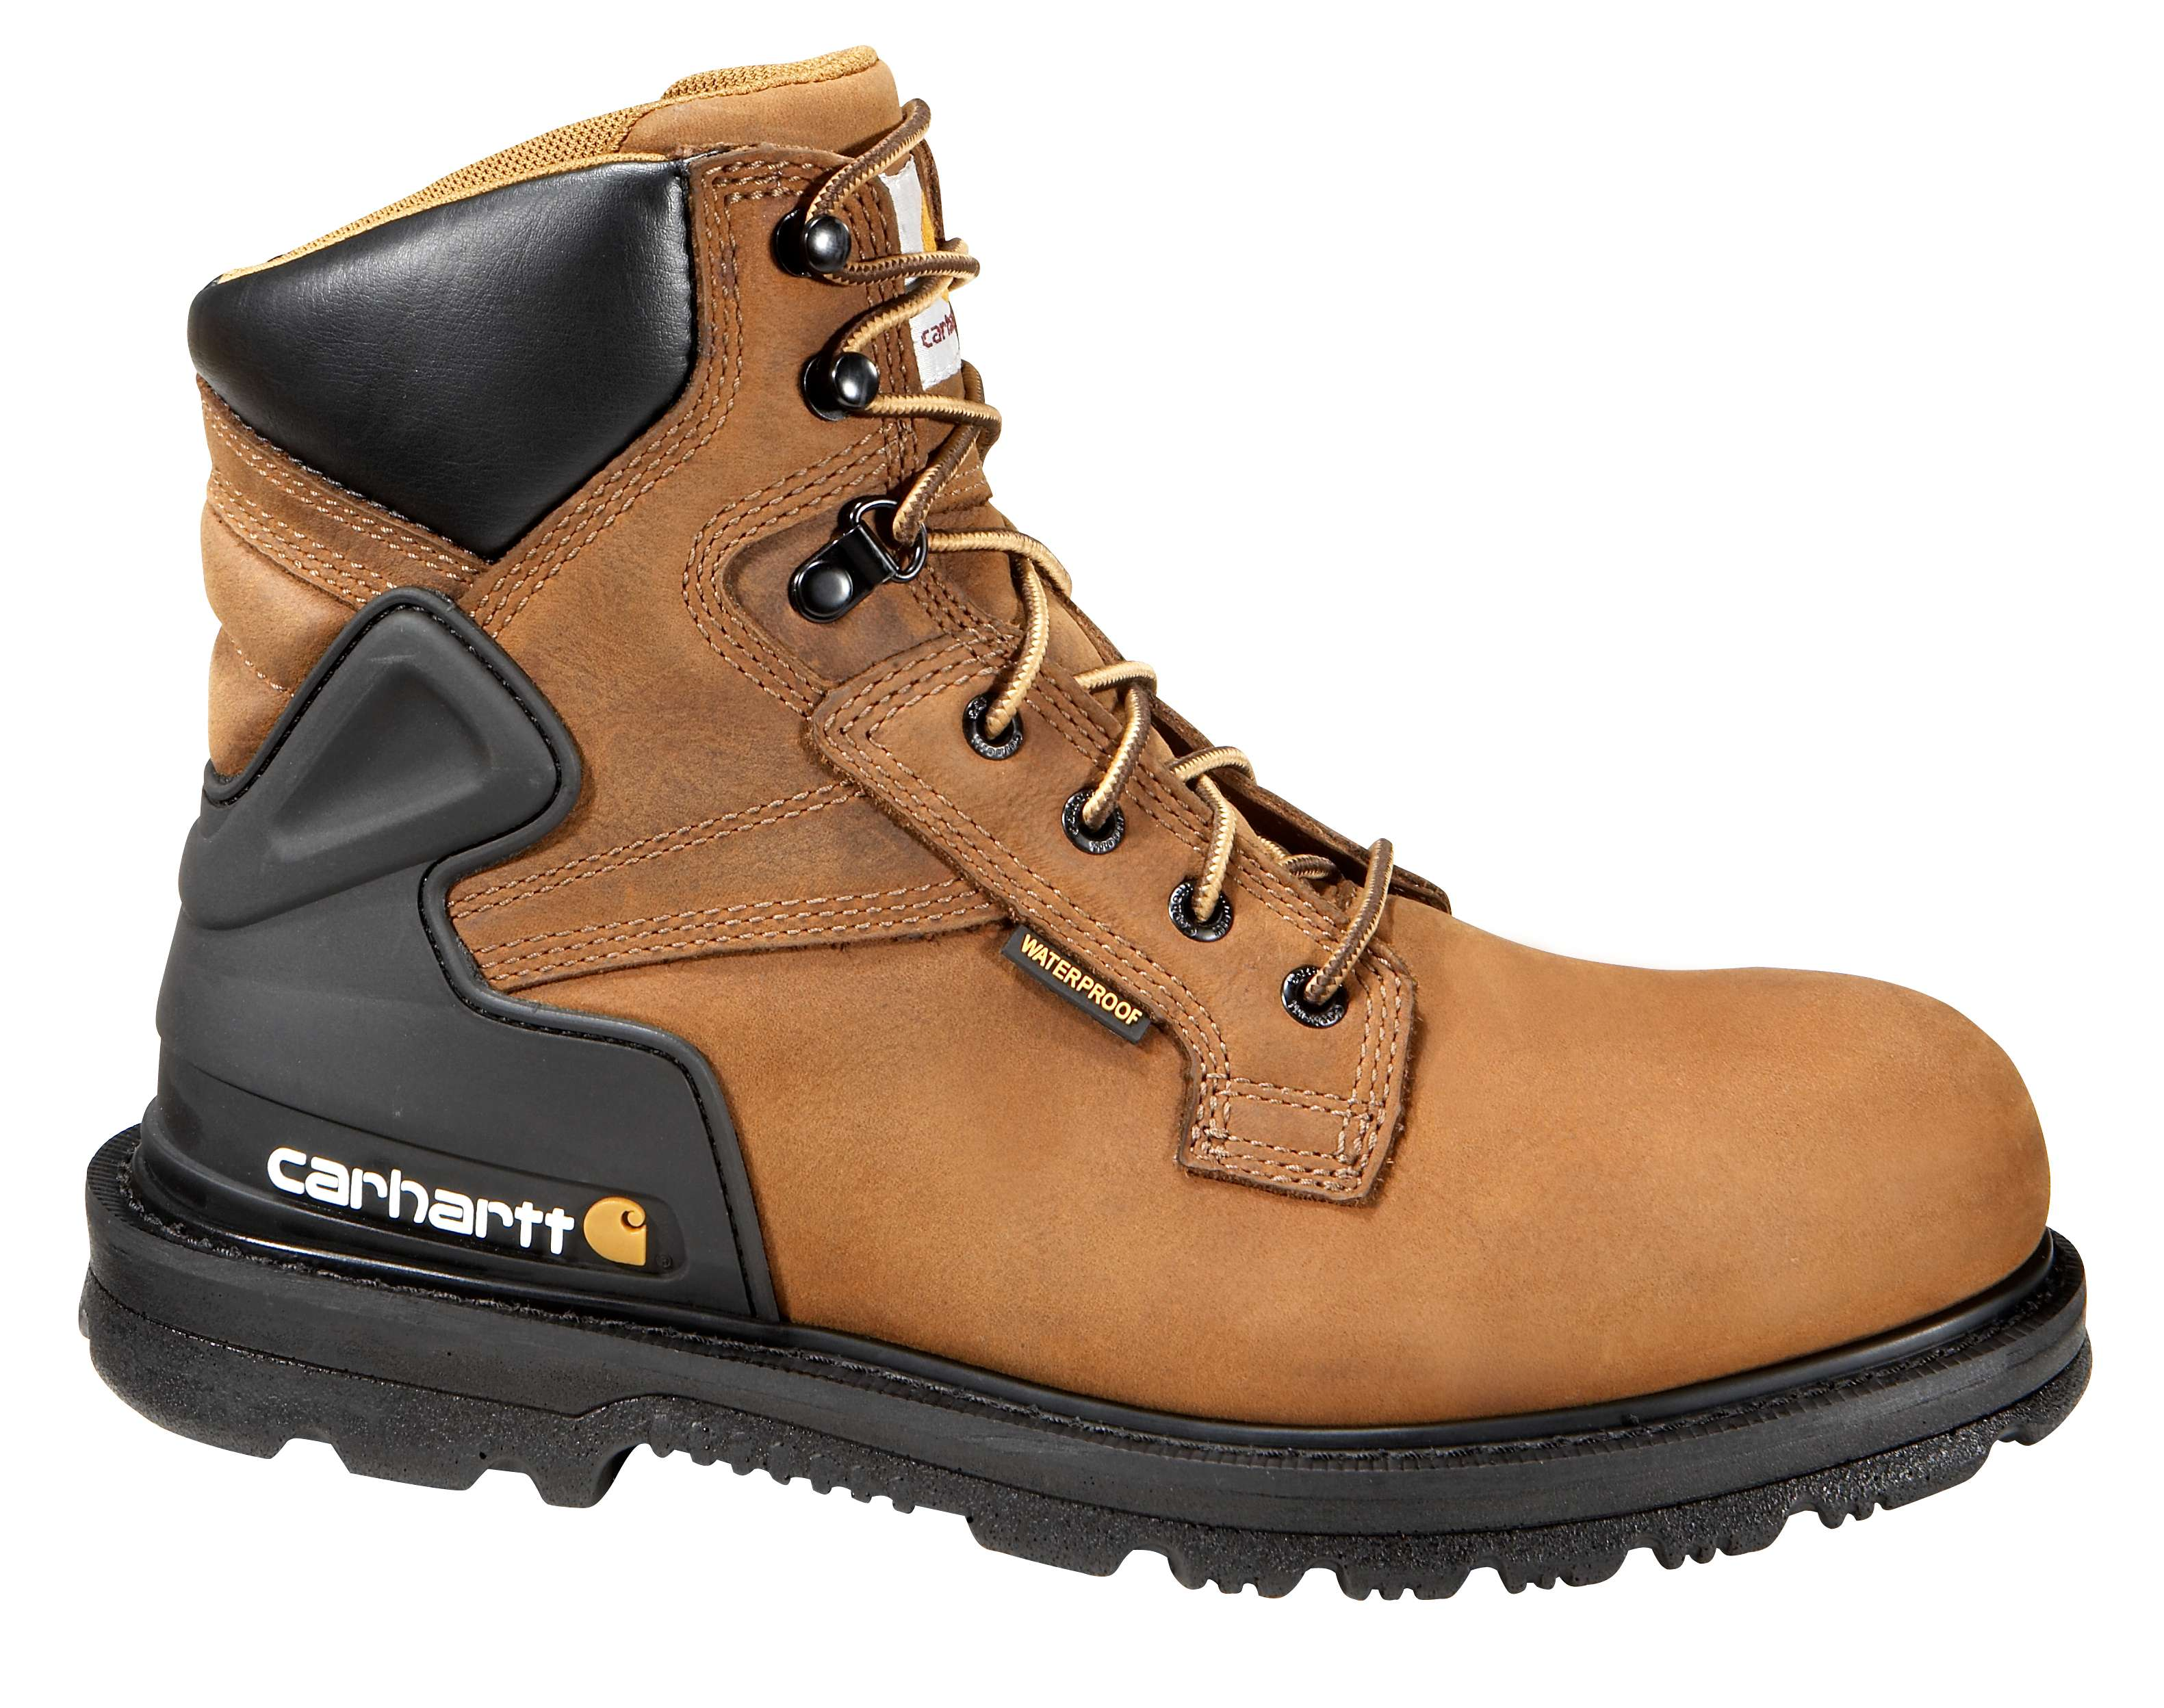 Carhartt 6 INCH STEEL TOE WORK BOOT